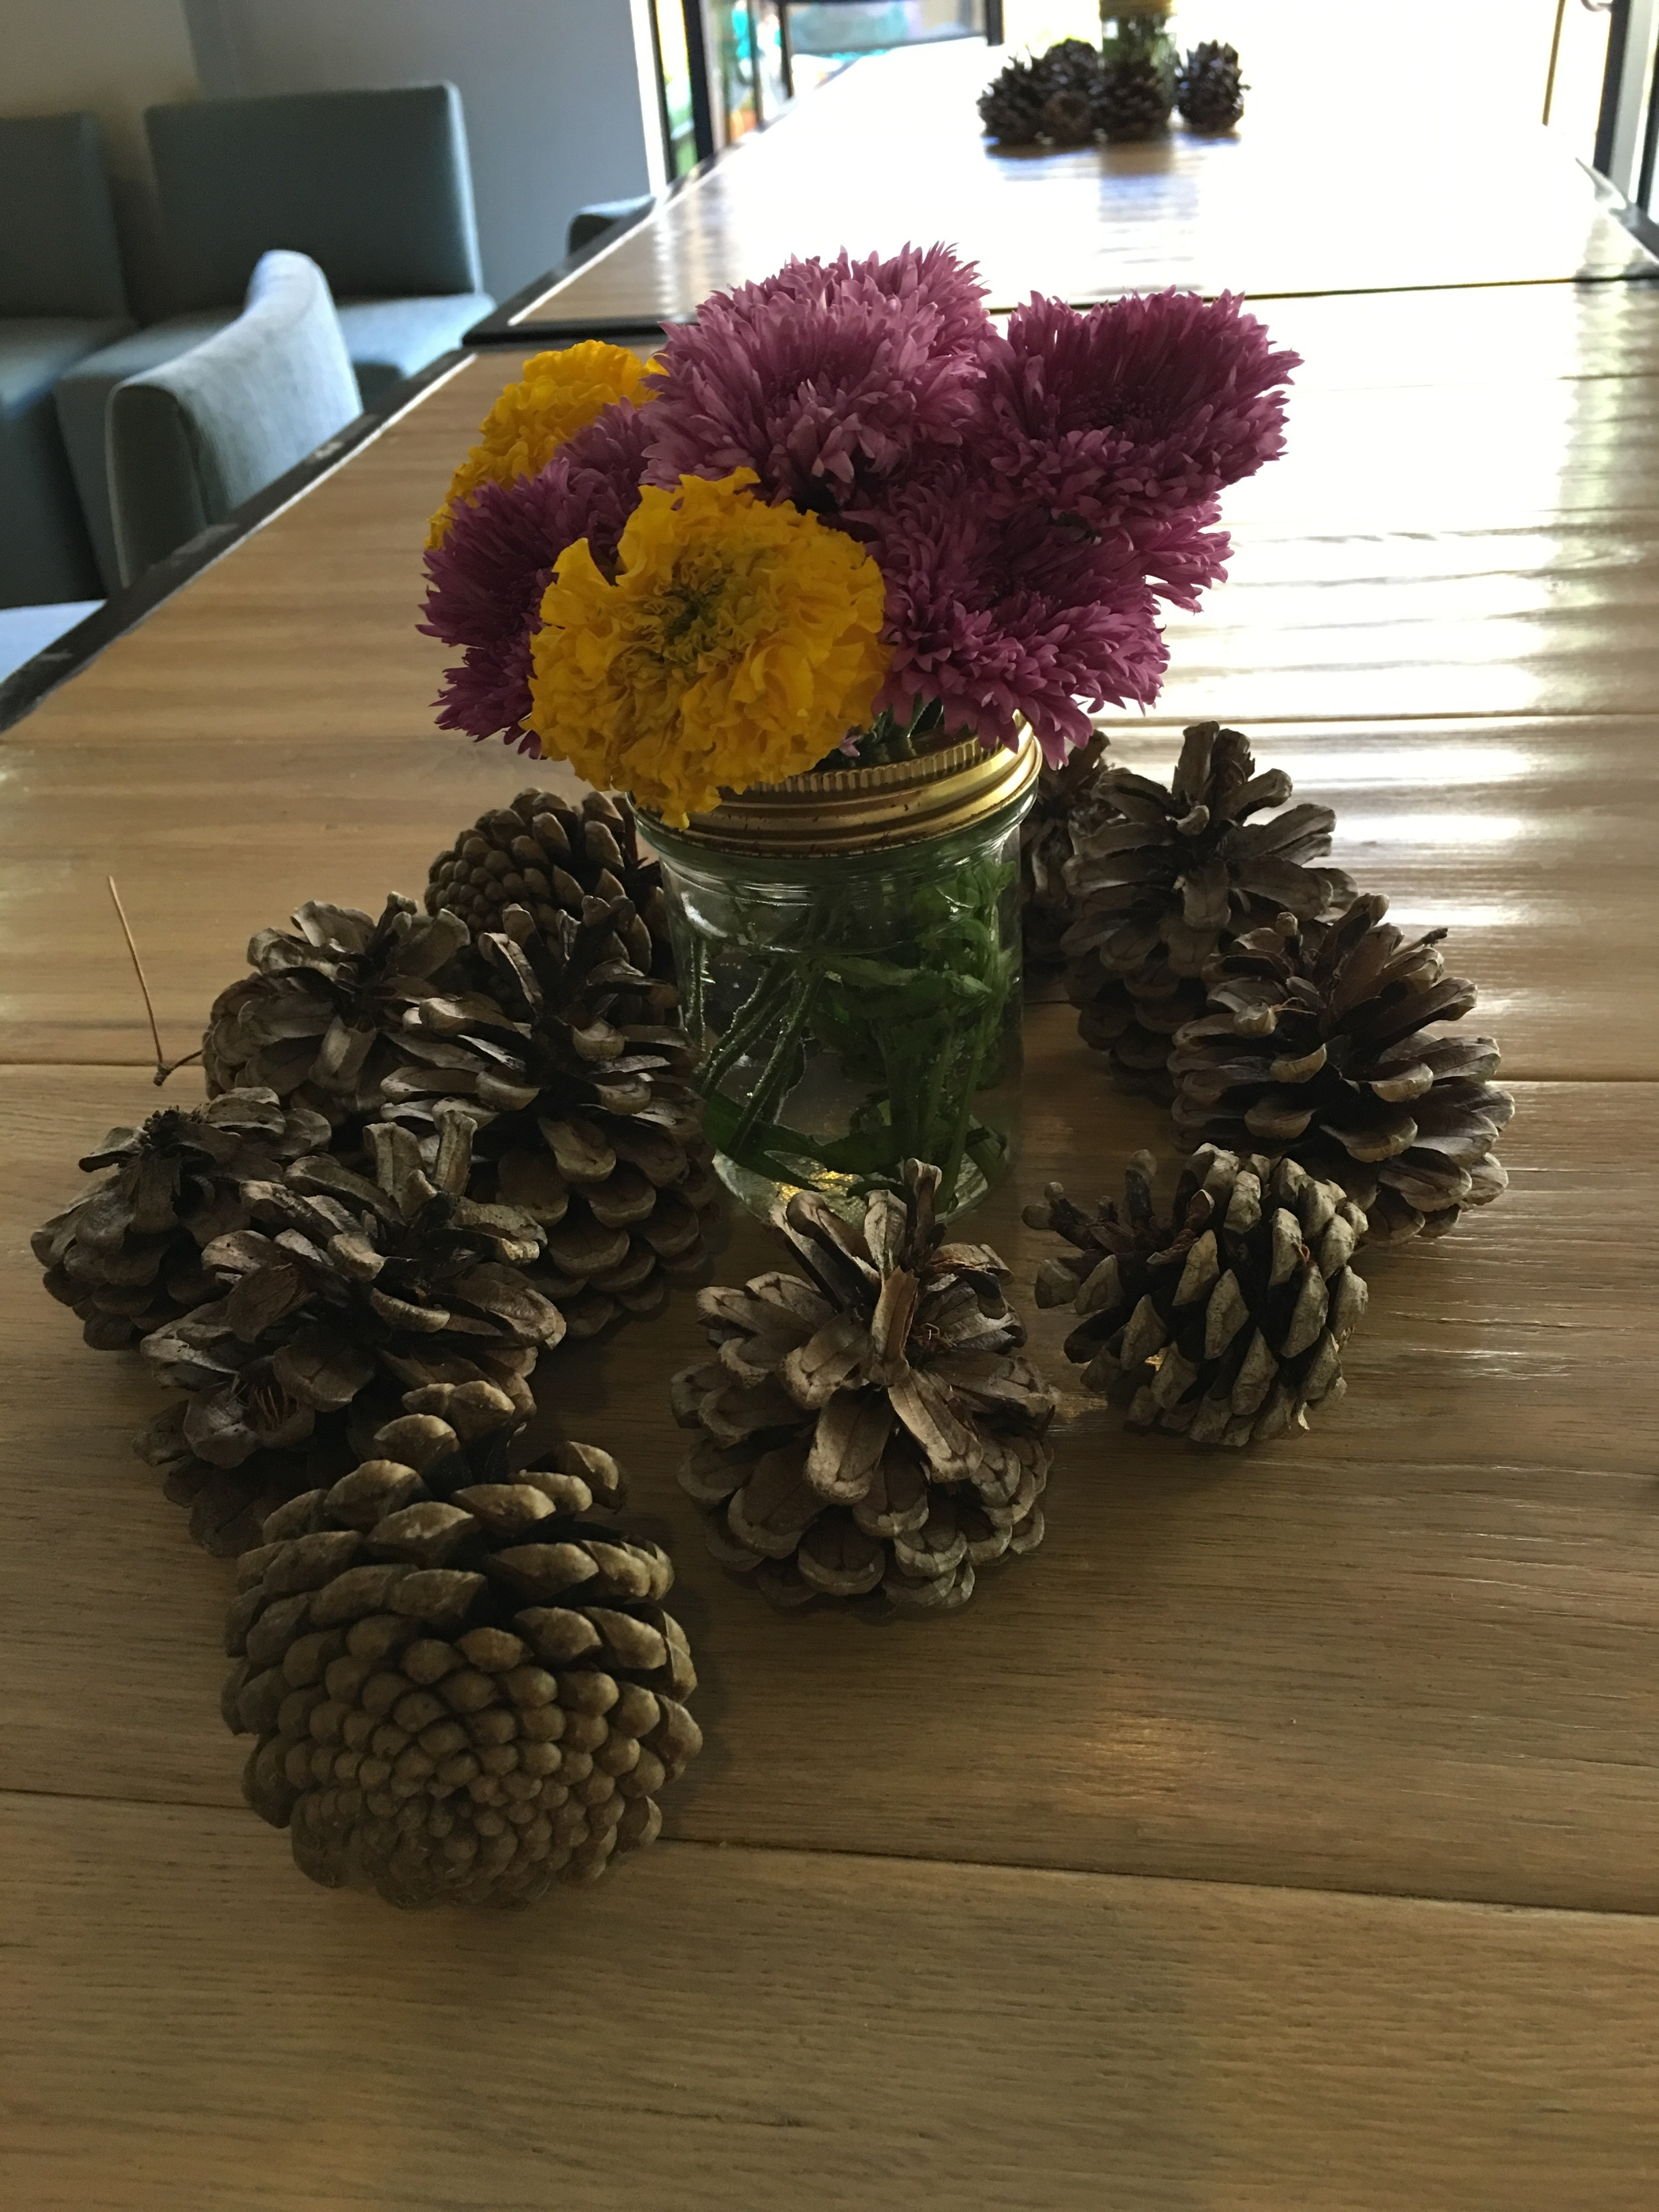 backyard gathered pinecones, and flowers simply arranged in a short mason jar